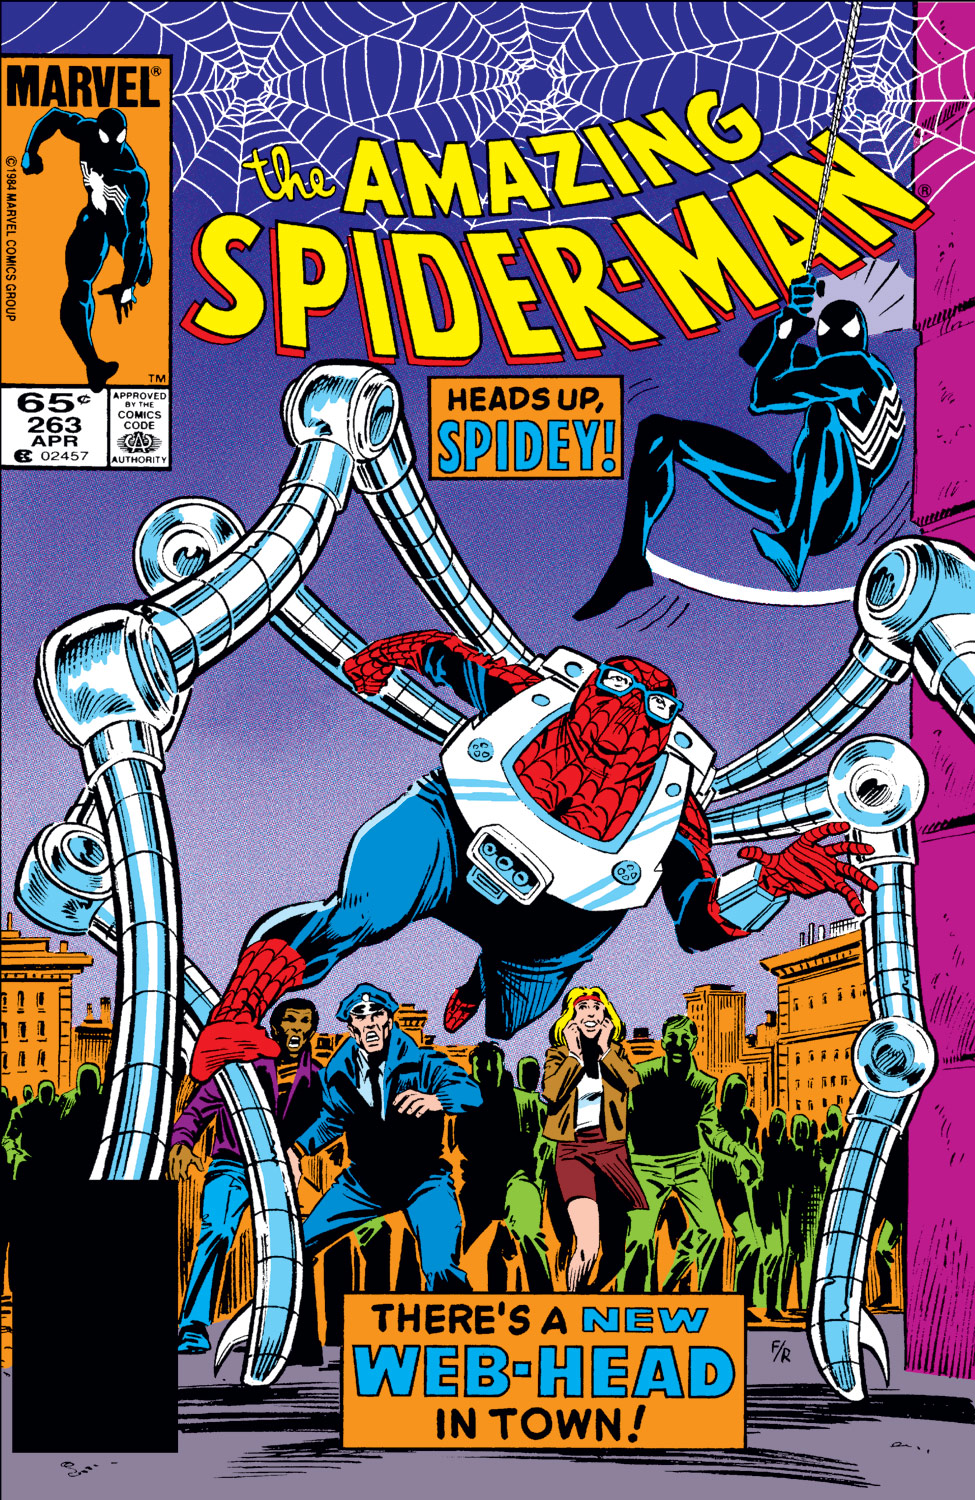 The Amazing Spider-Man (1963) #263